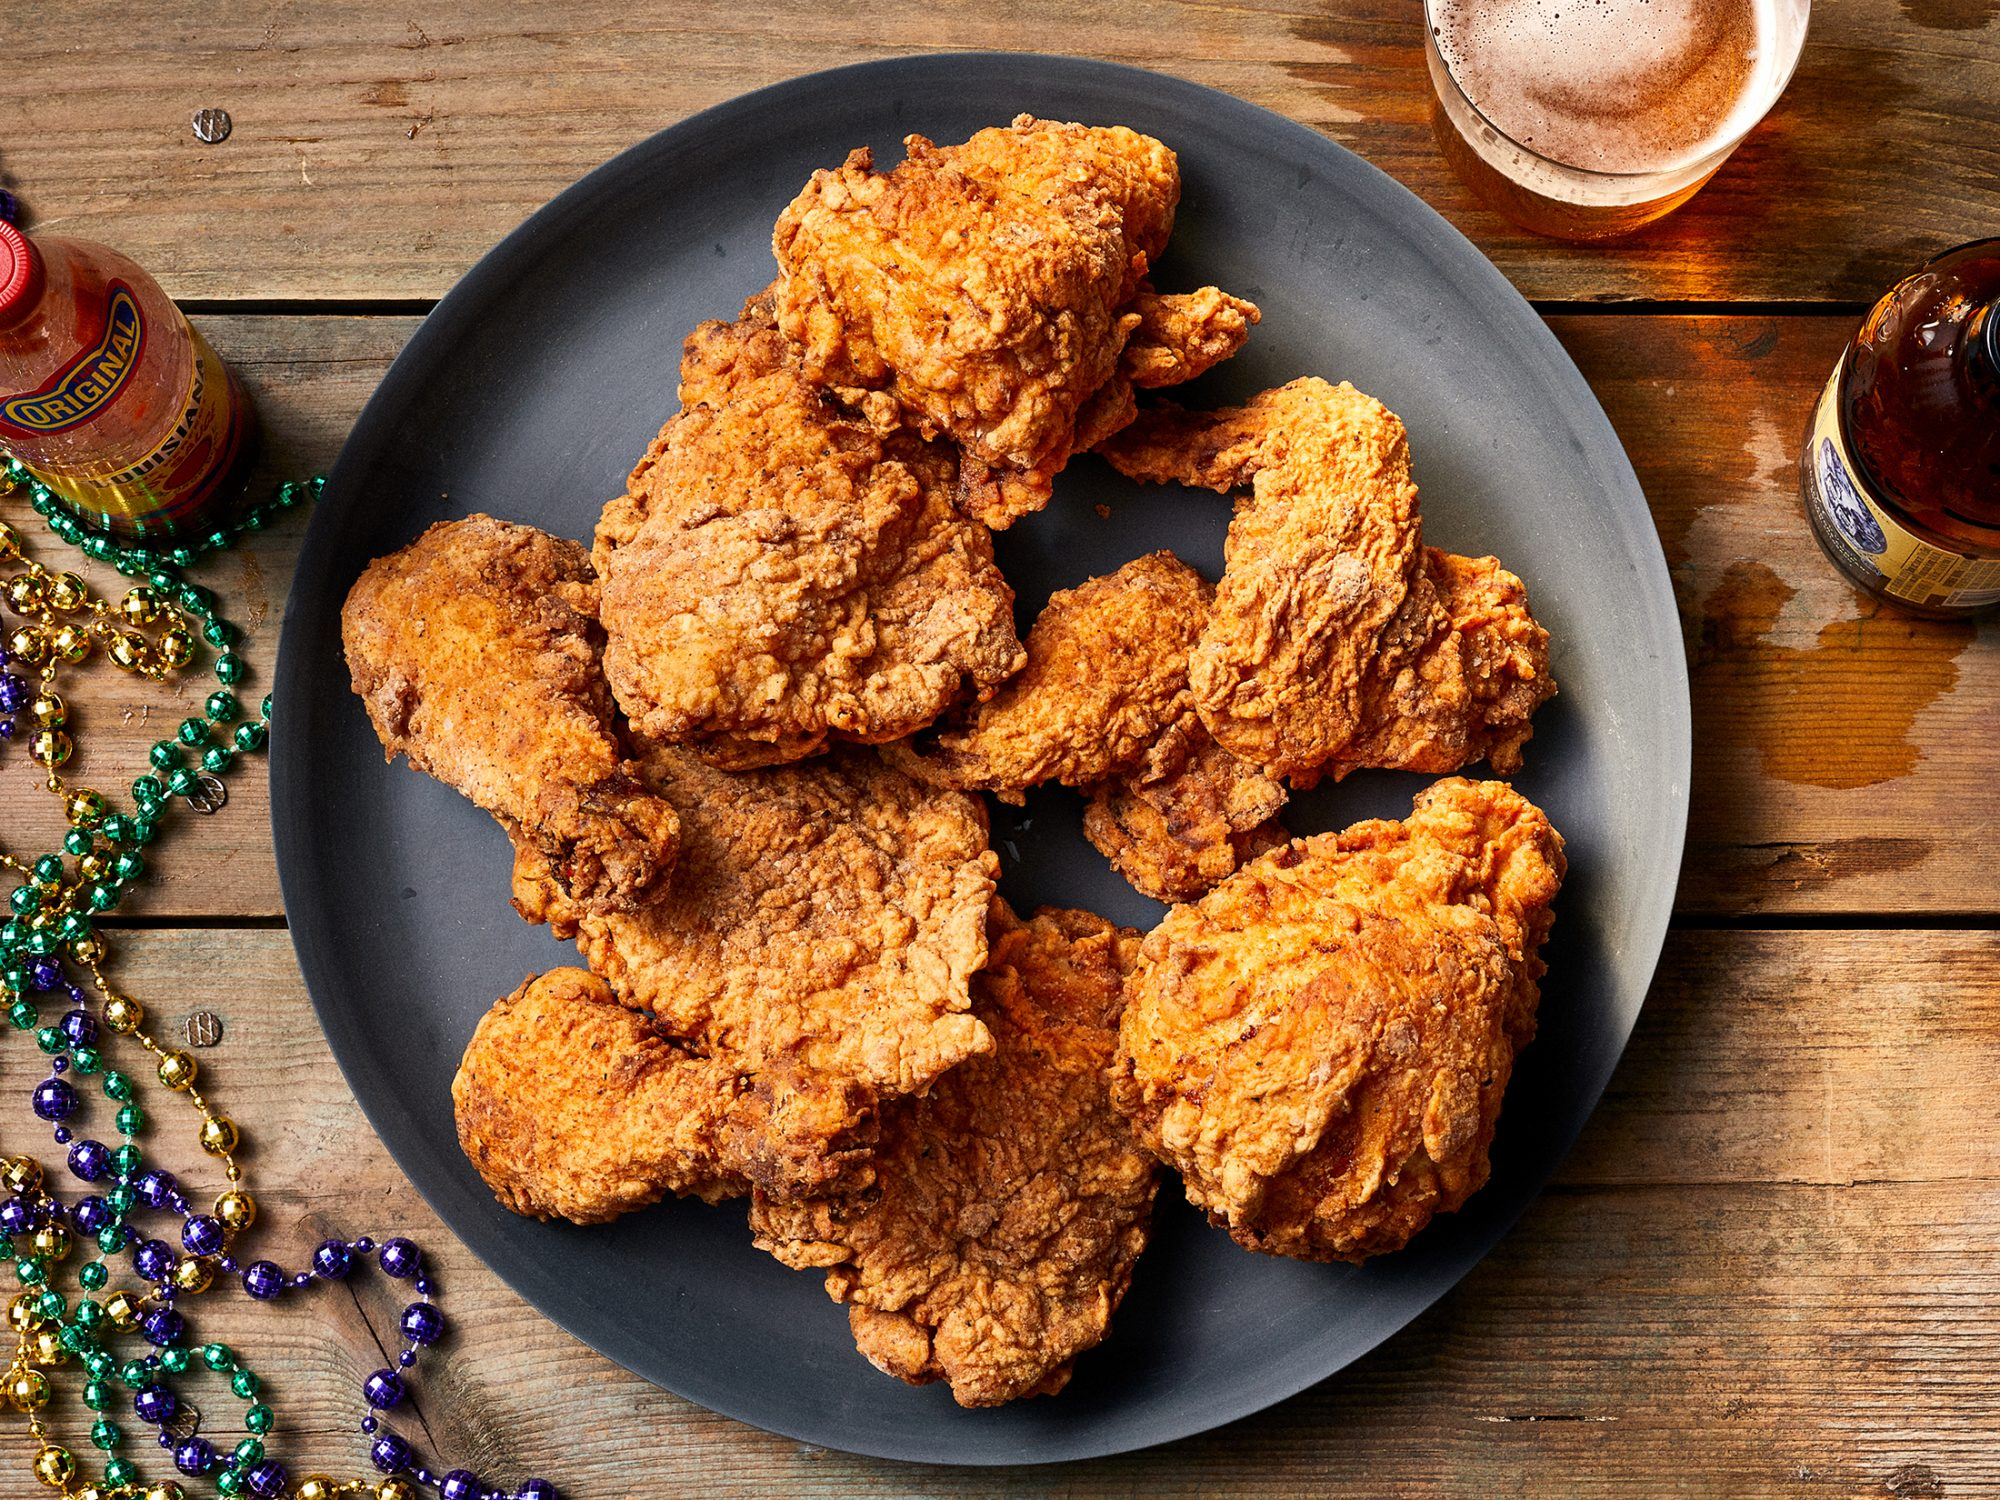 Copycat Popeyes Fried Chicken image